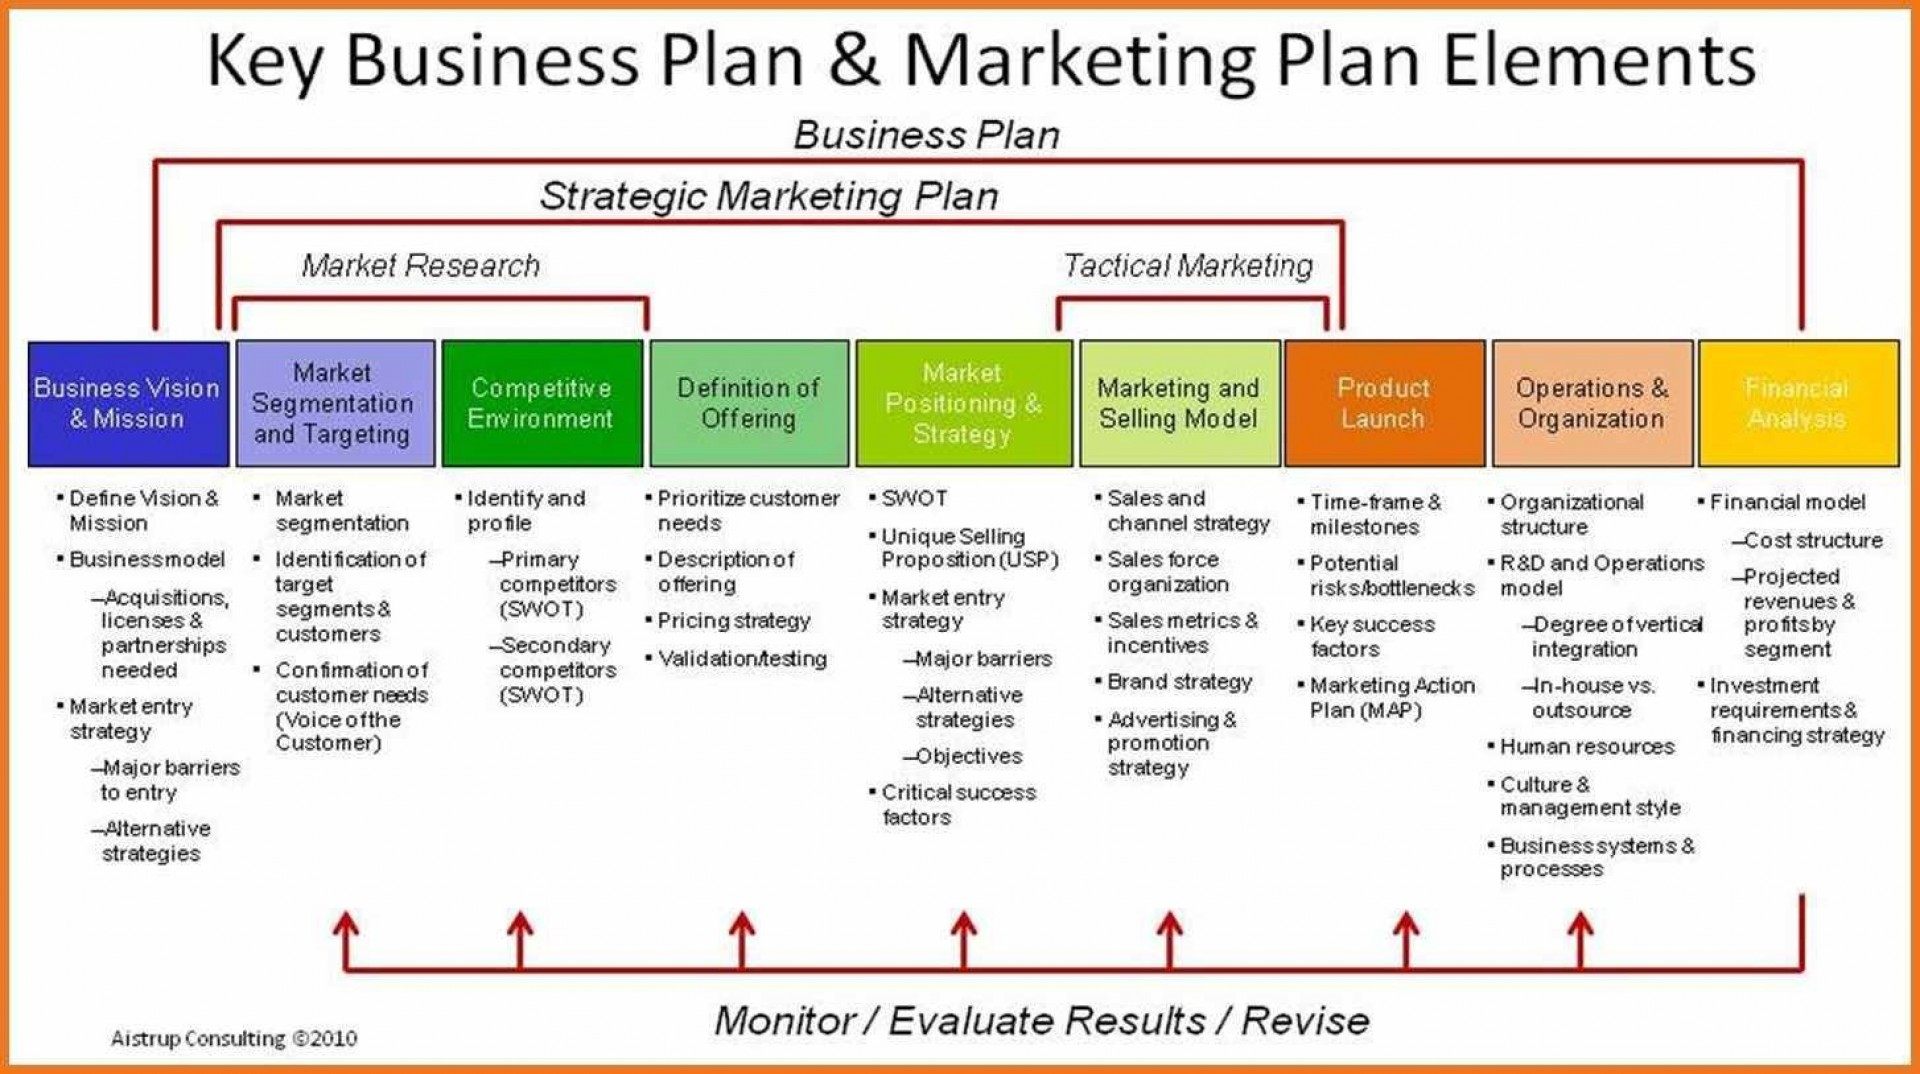 004 Awesome Digital Marketing Plan Template Word Photo 1920